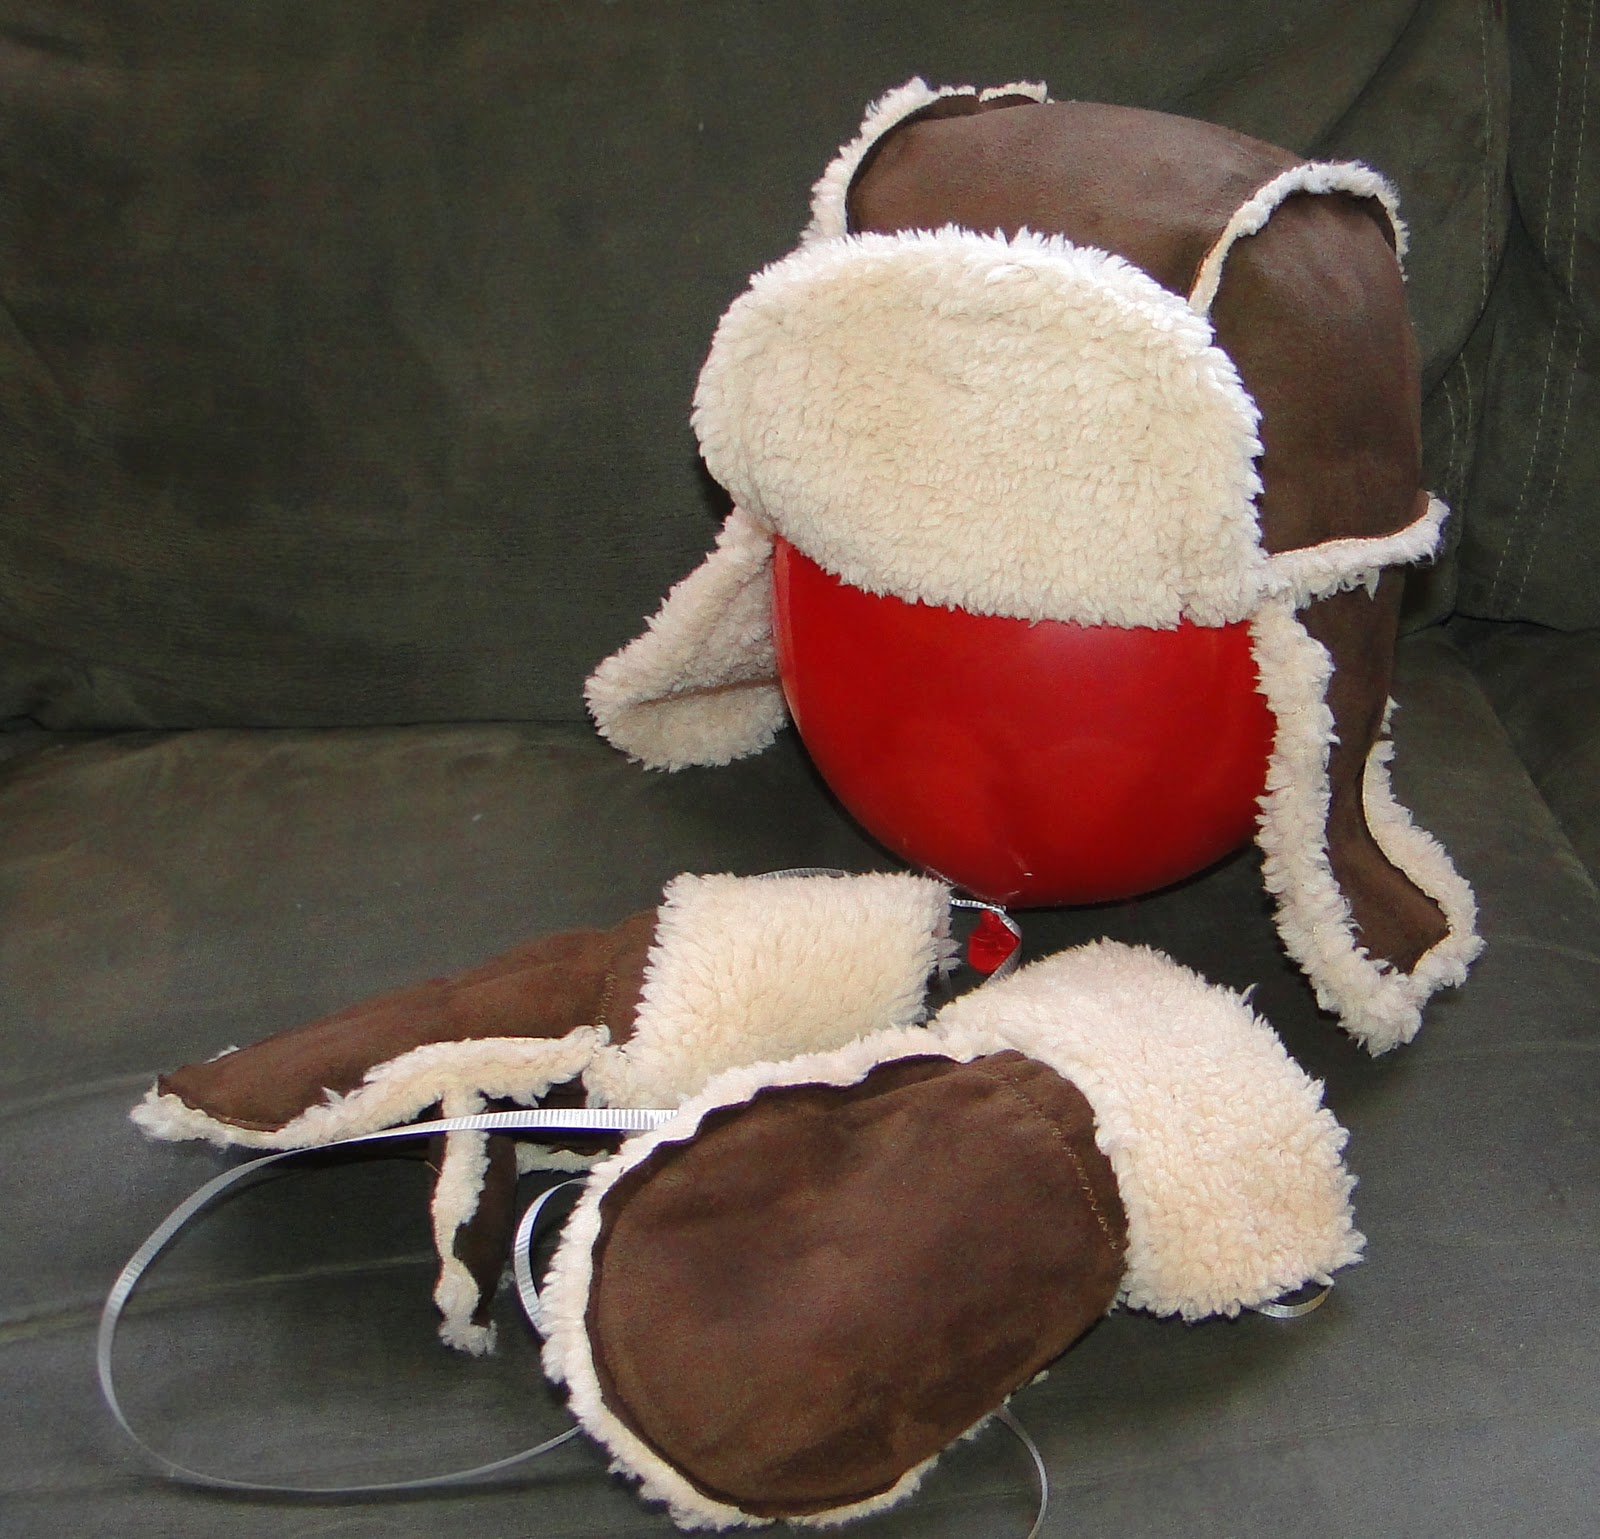 I ve been wanting to make my little buddy a bomber hat when I found some  great Sherpa microfleece last year. I ve been searching for a simple bomber  hat ... 155c29e8e43